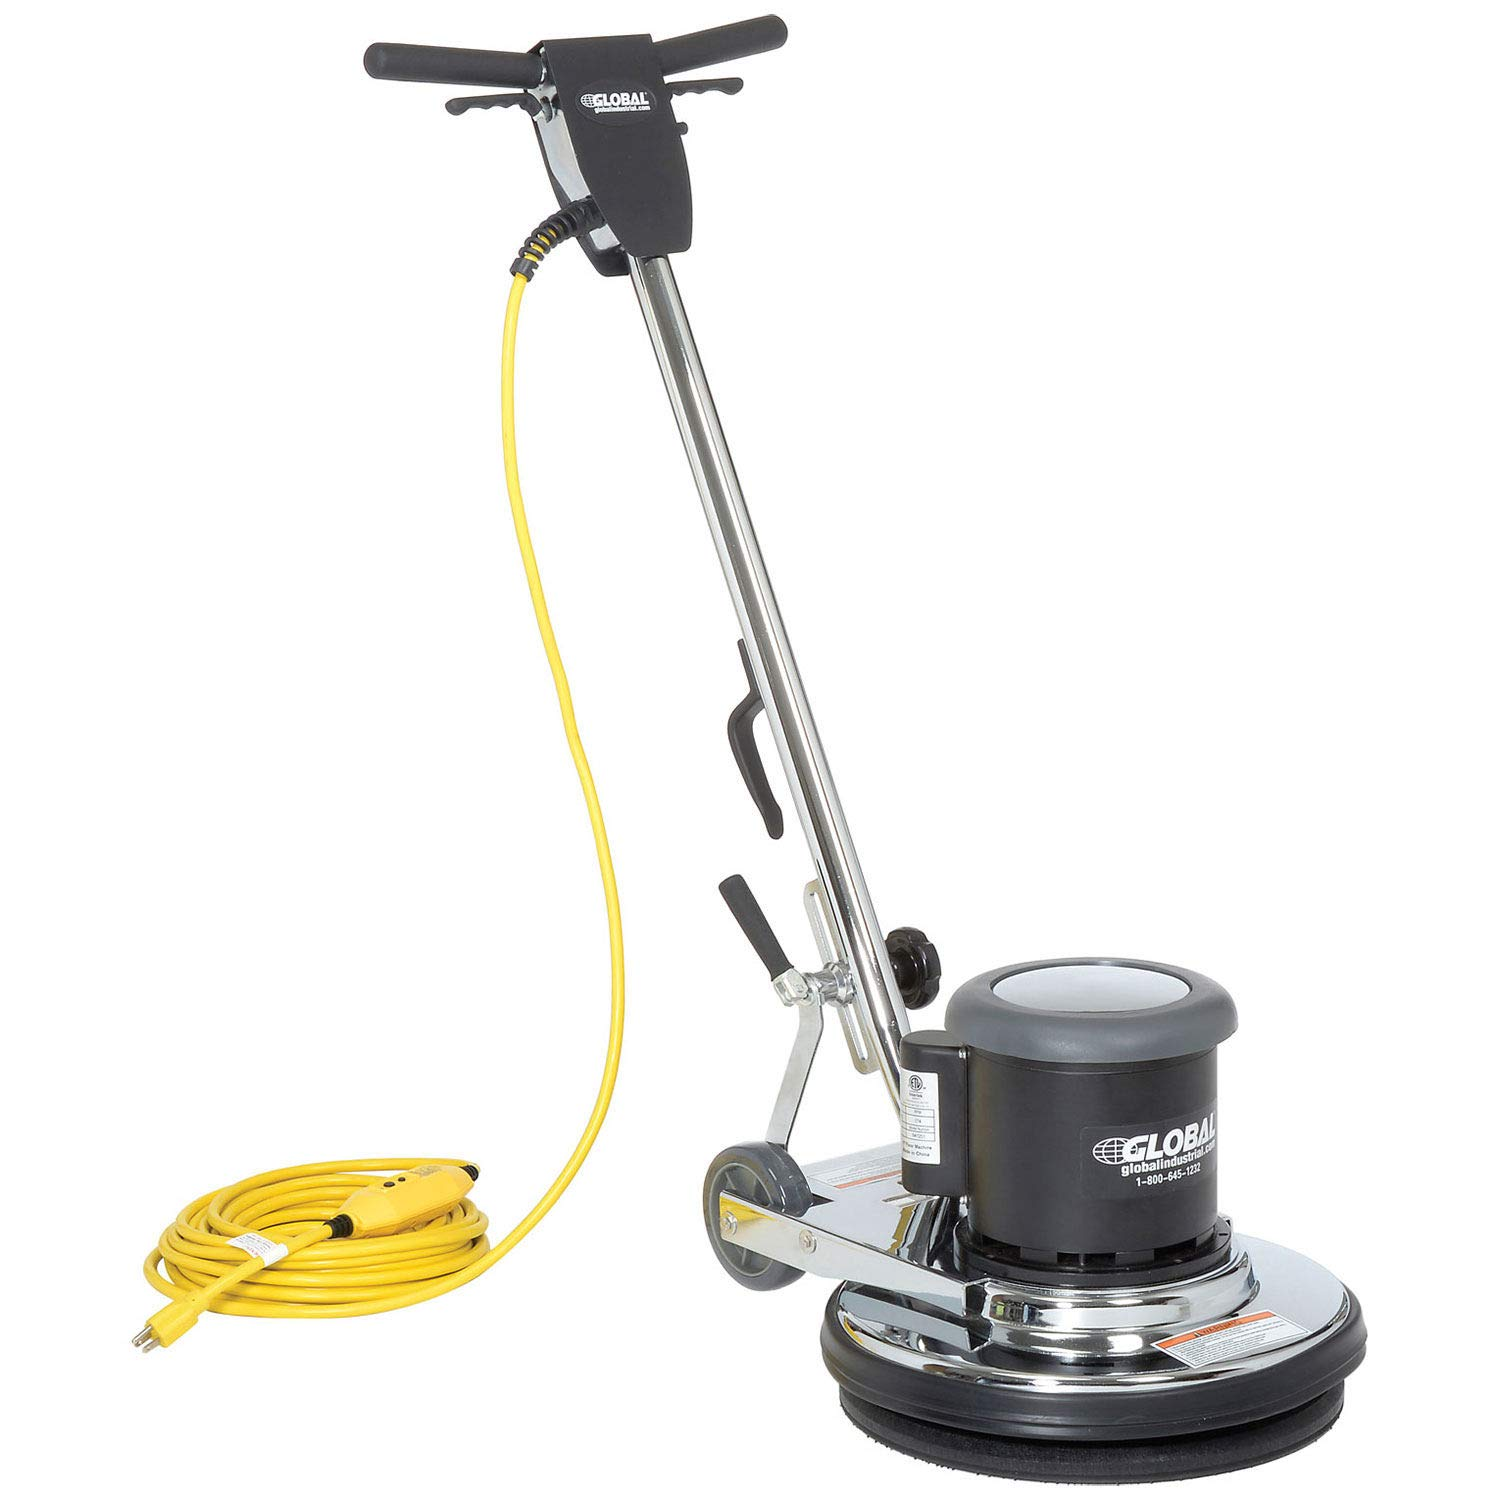 Corded Floor Machine, 17'' Cleaning Width, Lot of 1